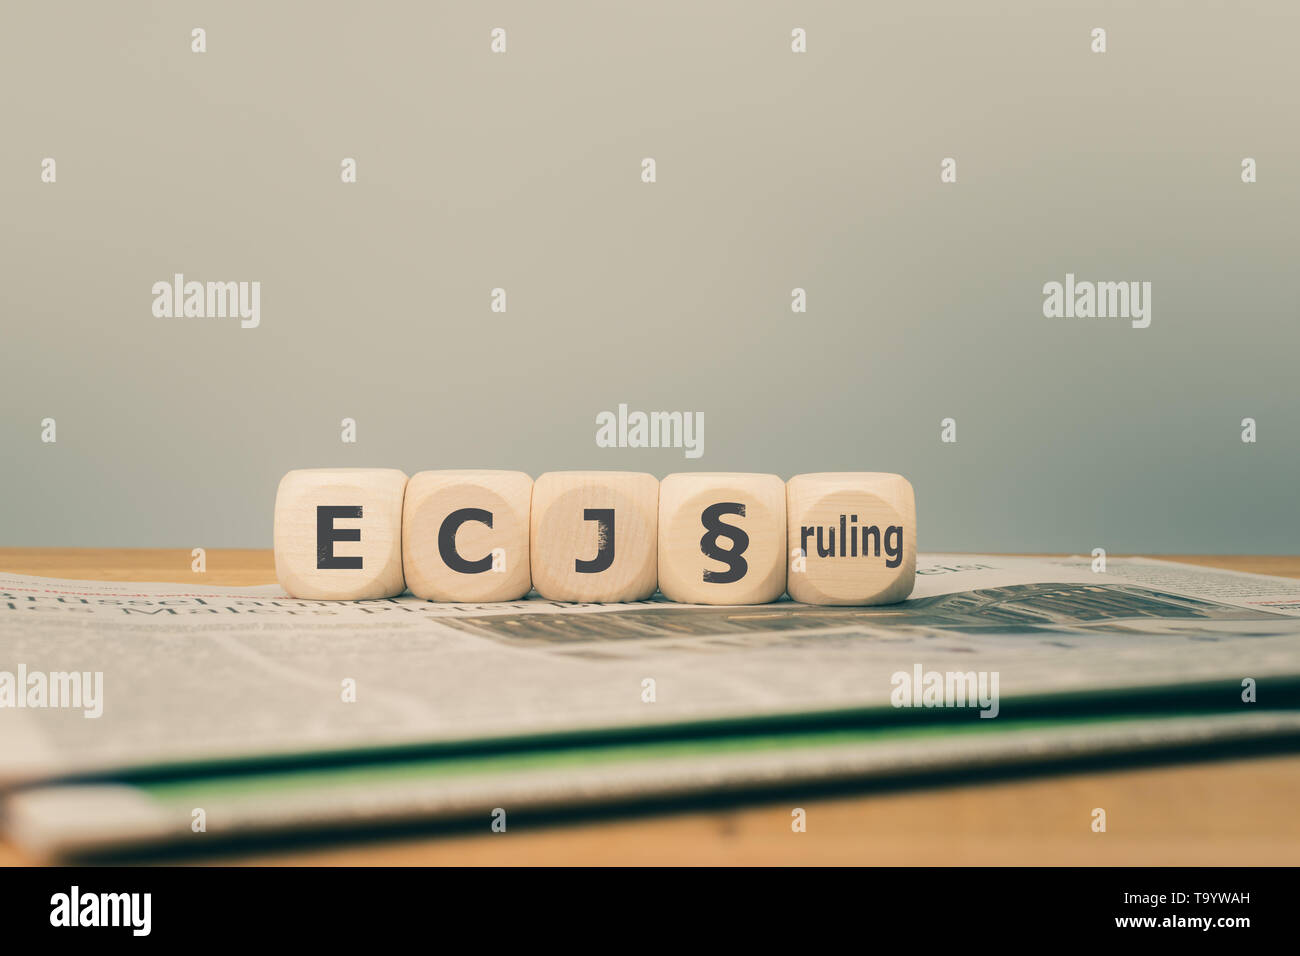 Symbol for a decision of the European Court of Justice (ECJ). 'ECJ ruling' written on cubes placed on a newspaper. - Stock Image